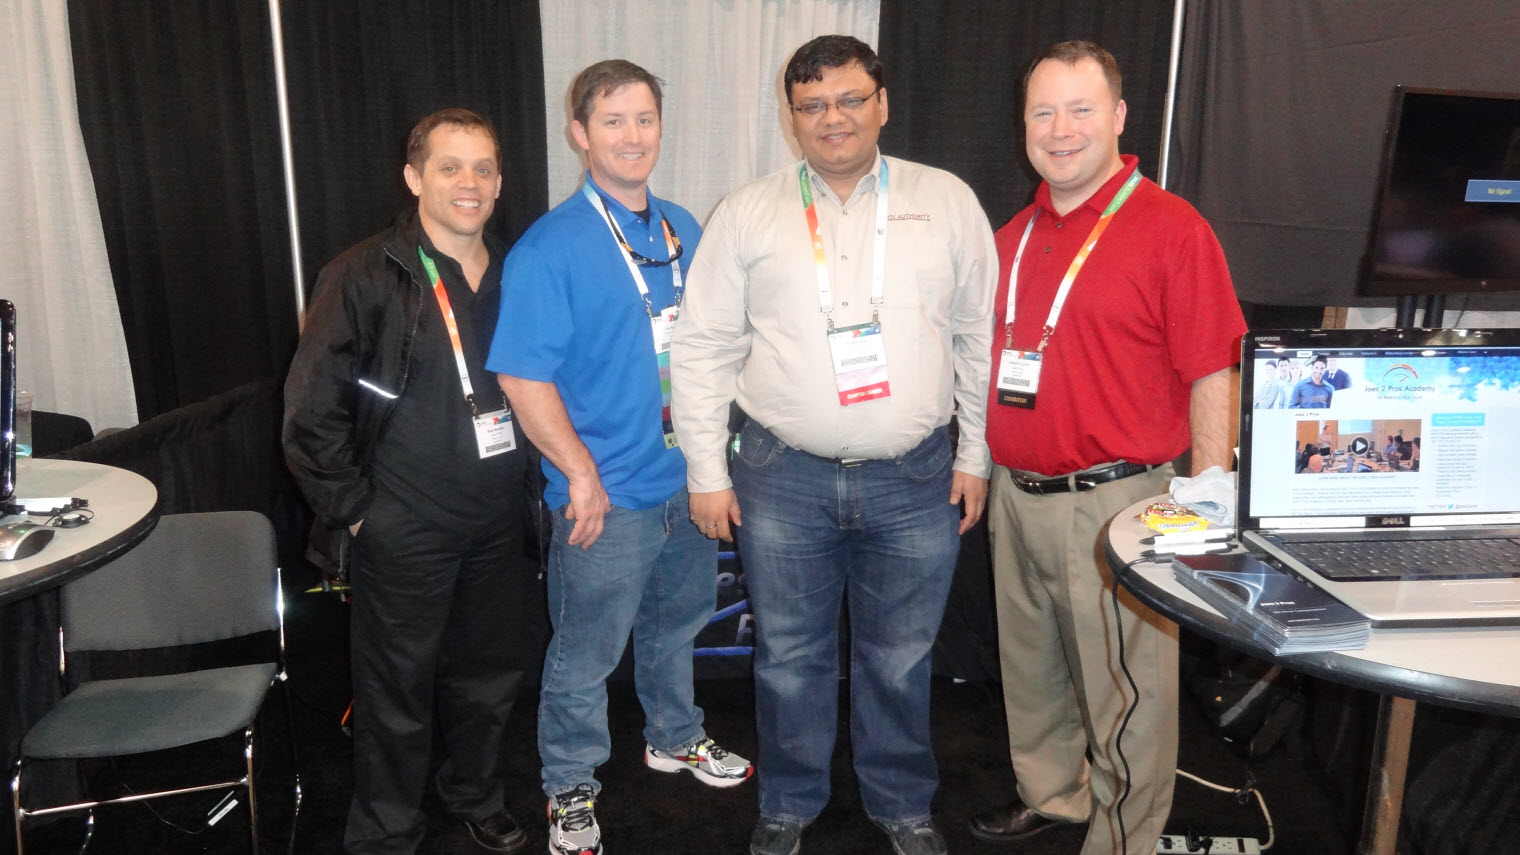 SQL SERVER - SQLPASS 2013, Charlotte Memories - Book and Book Signing - Part 2 sqlpass2013-book6